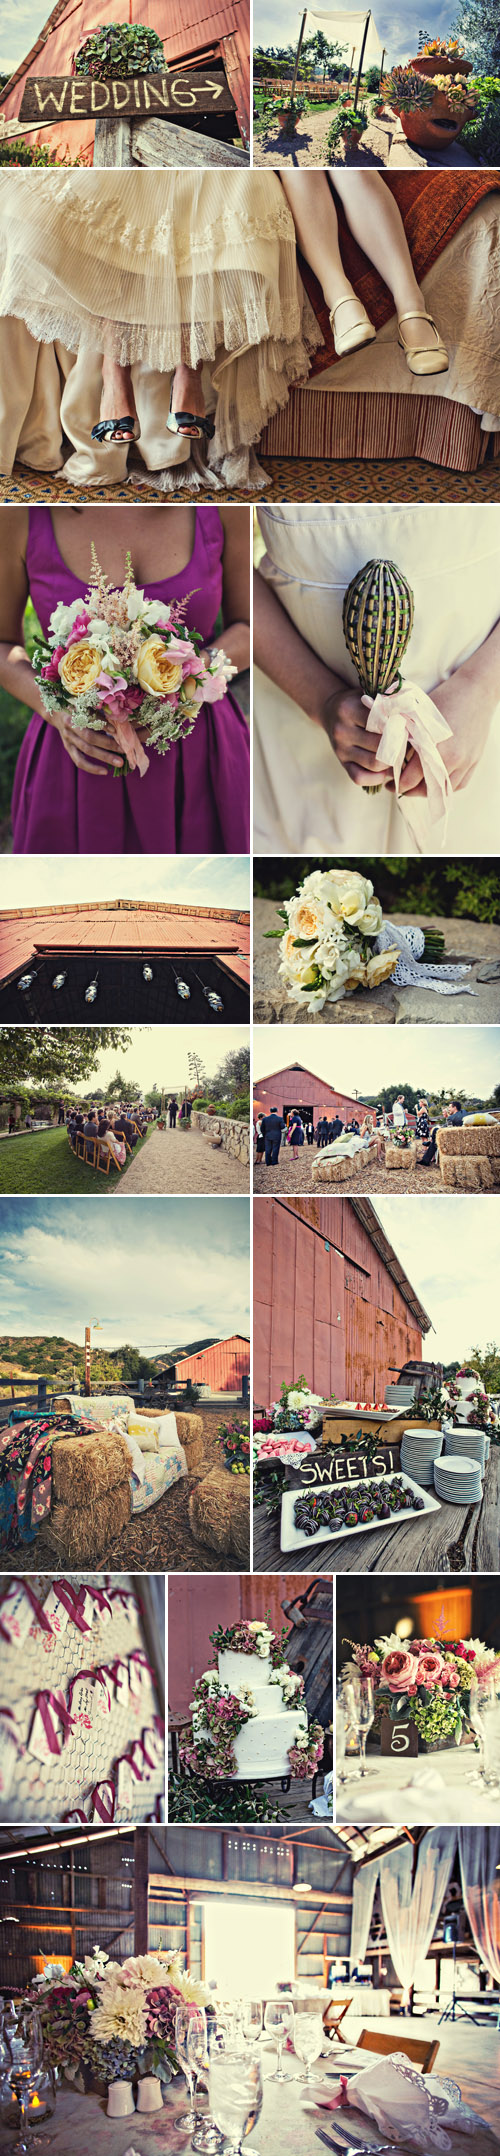 stylish rustic wedding at Ojai Valley Inn by Jill La Fleur, images by Joy Marie Photography